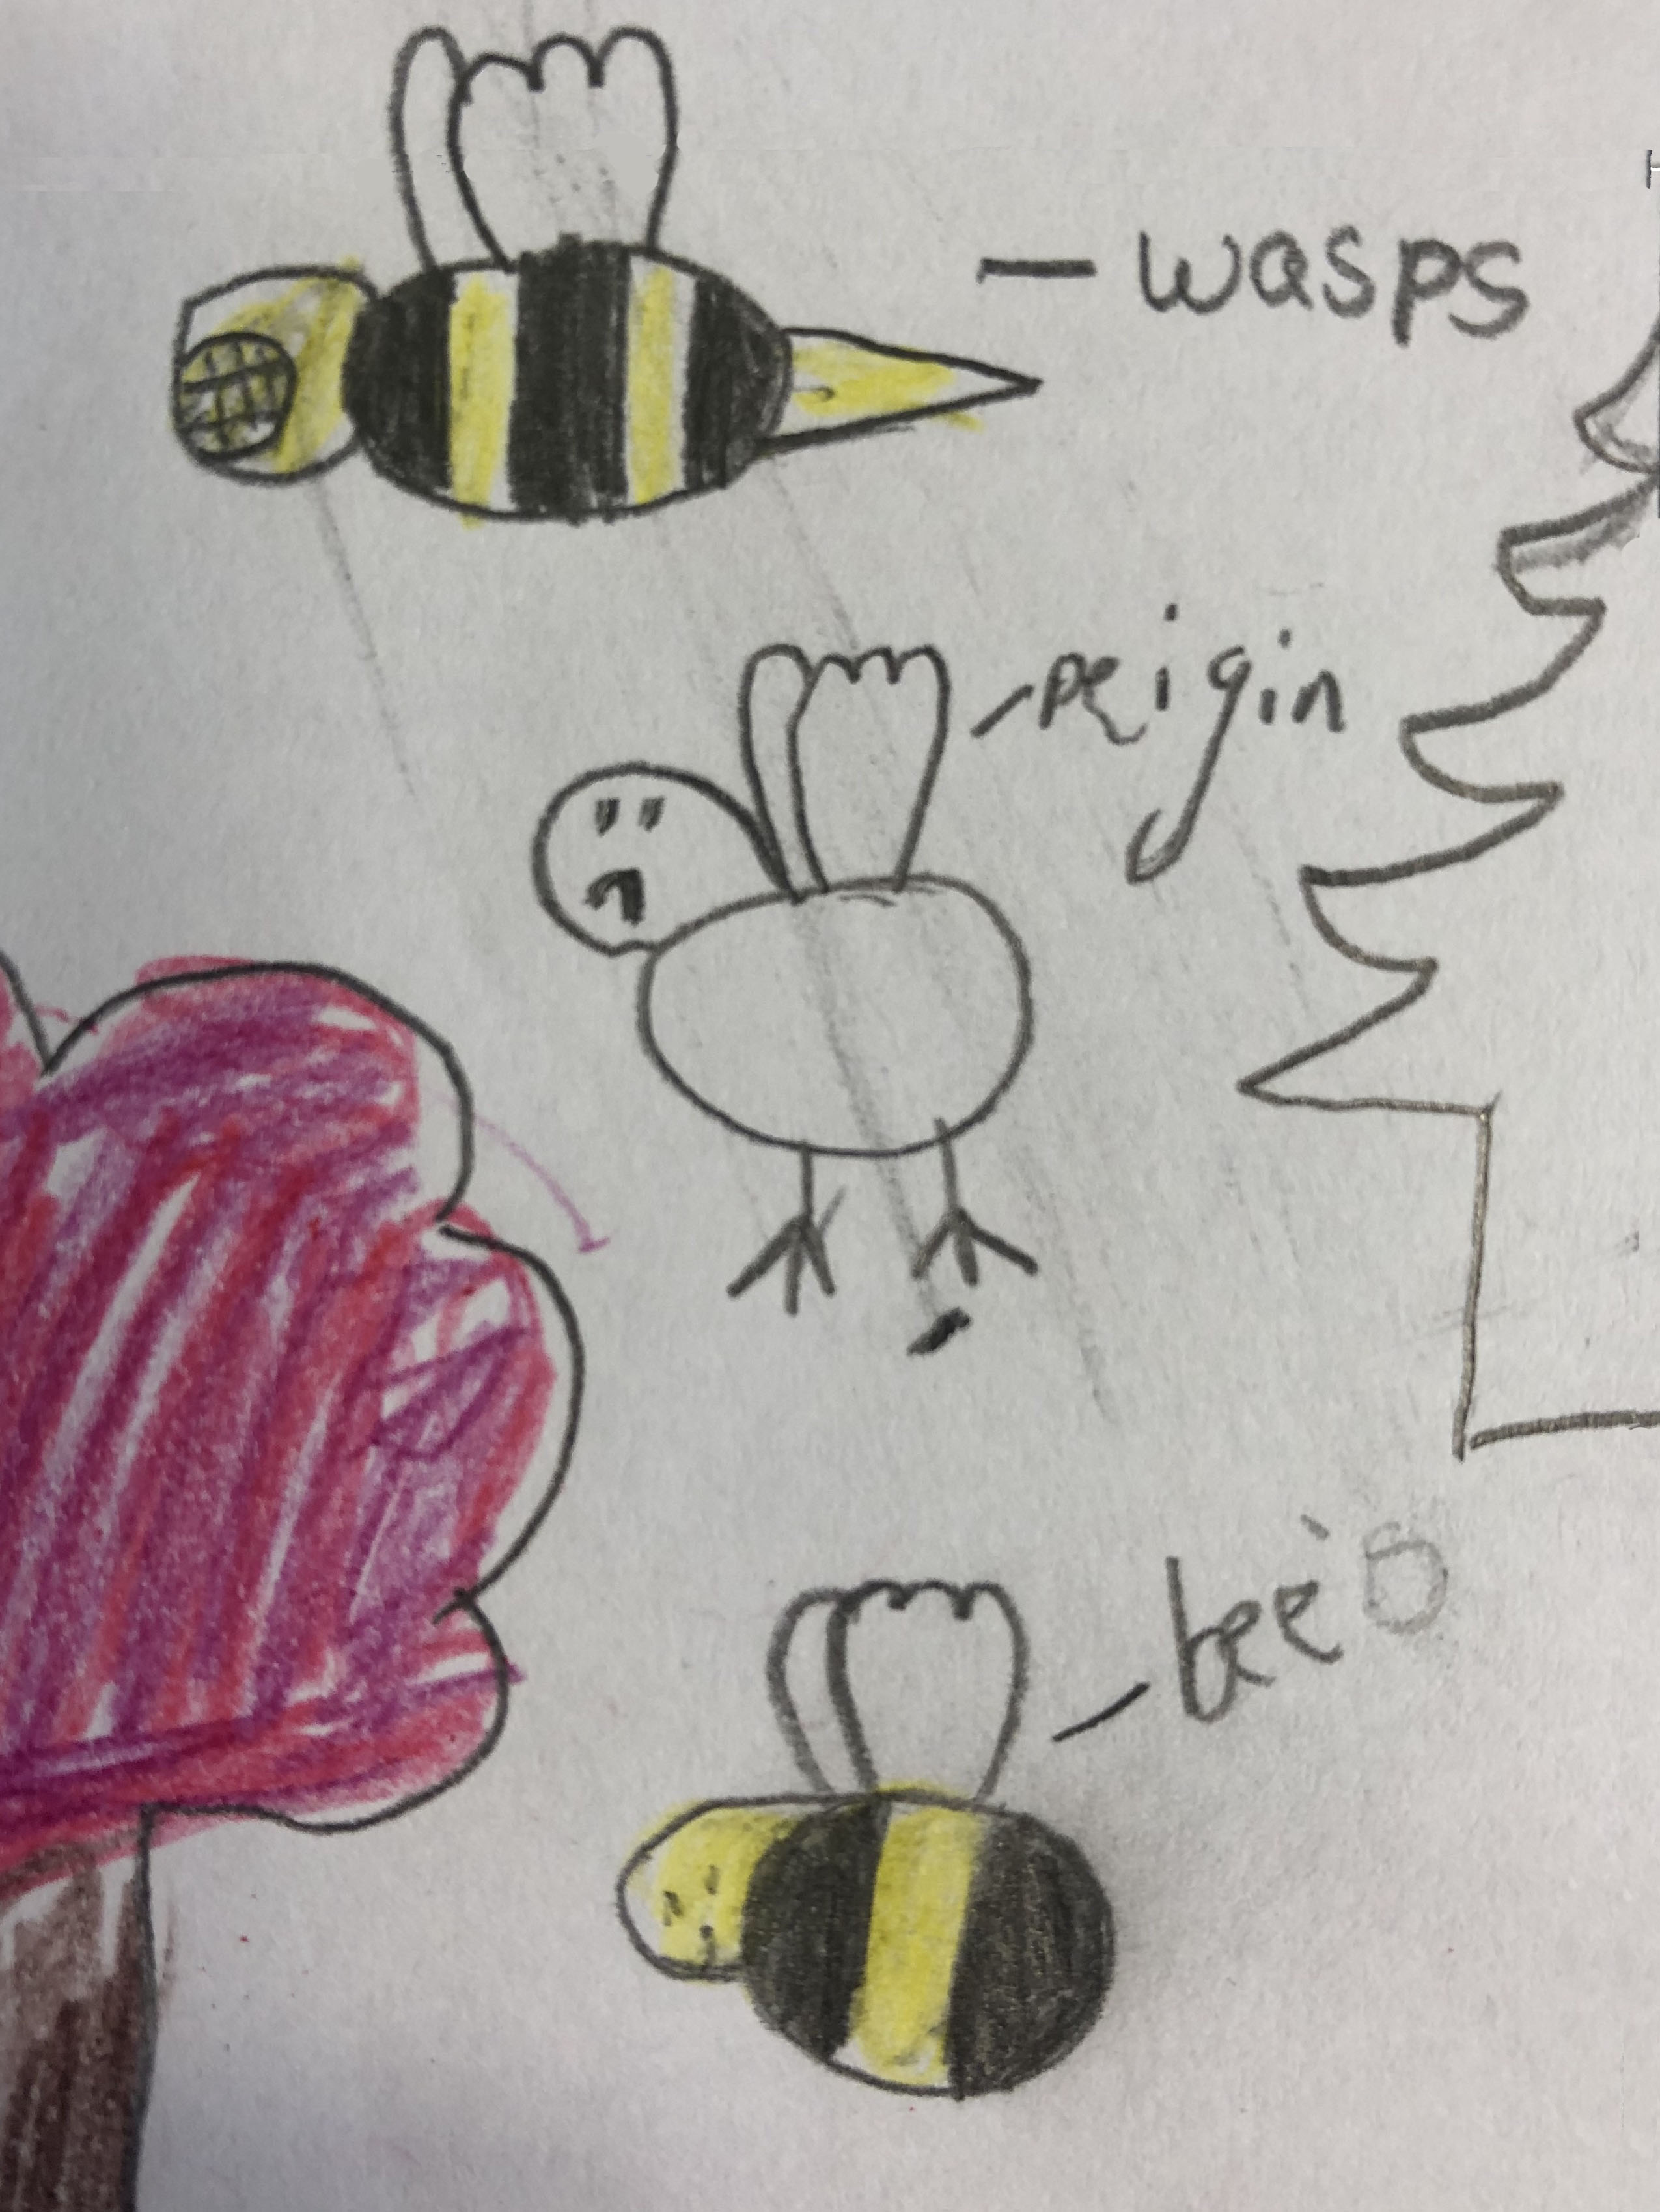 """Primary school child's drawing showing different attitudes towards bees and wasps'"